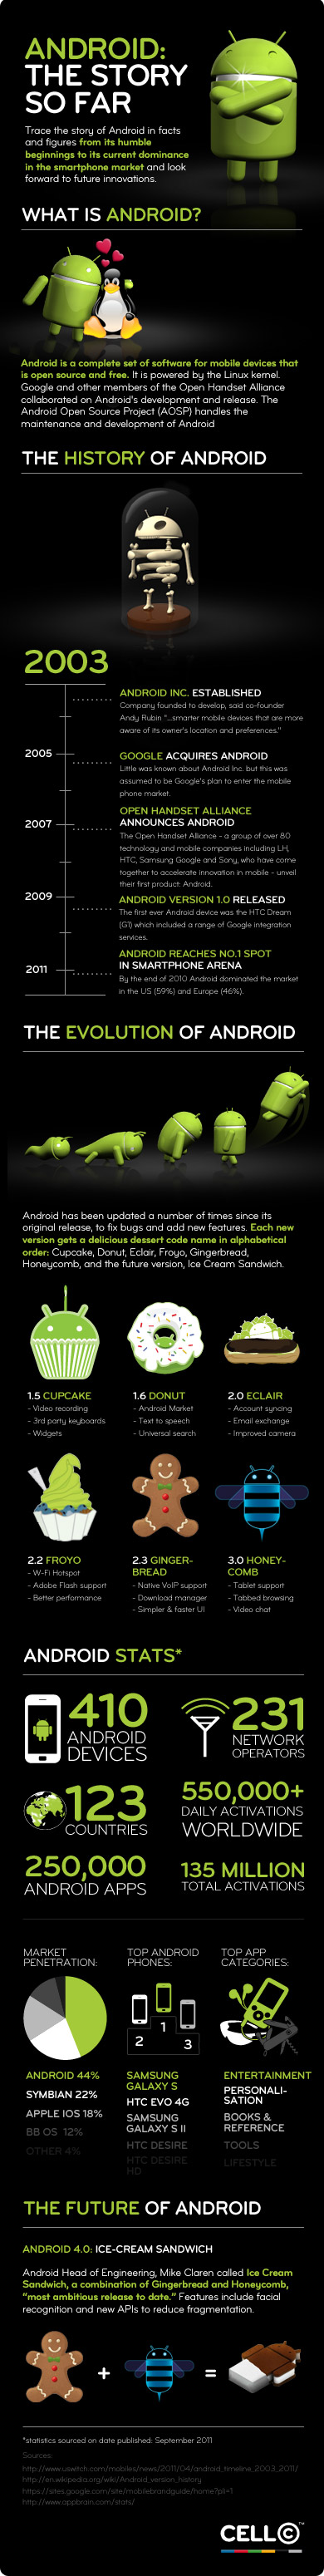 infographie histoire google android en image by Cell C